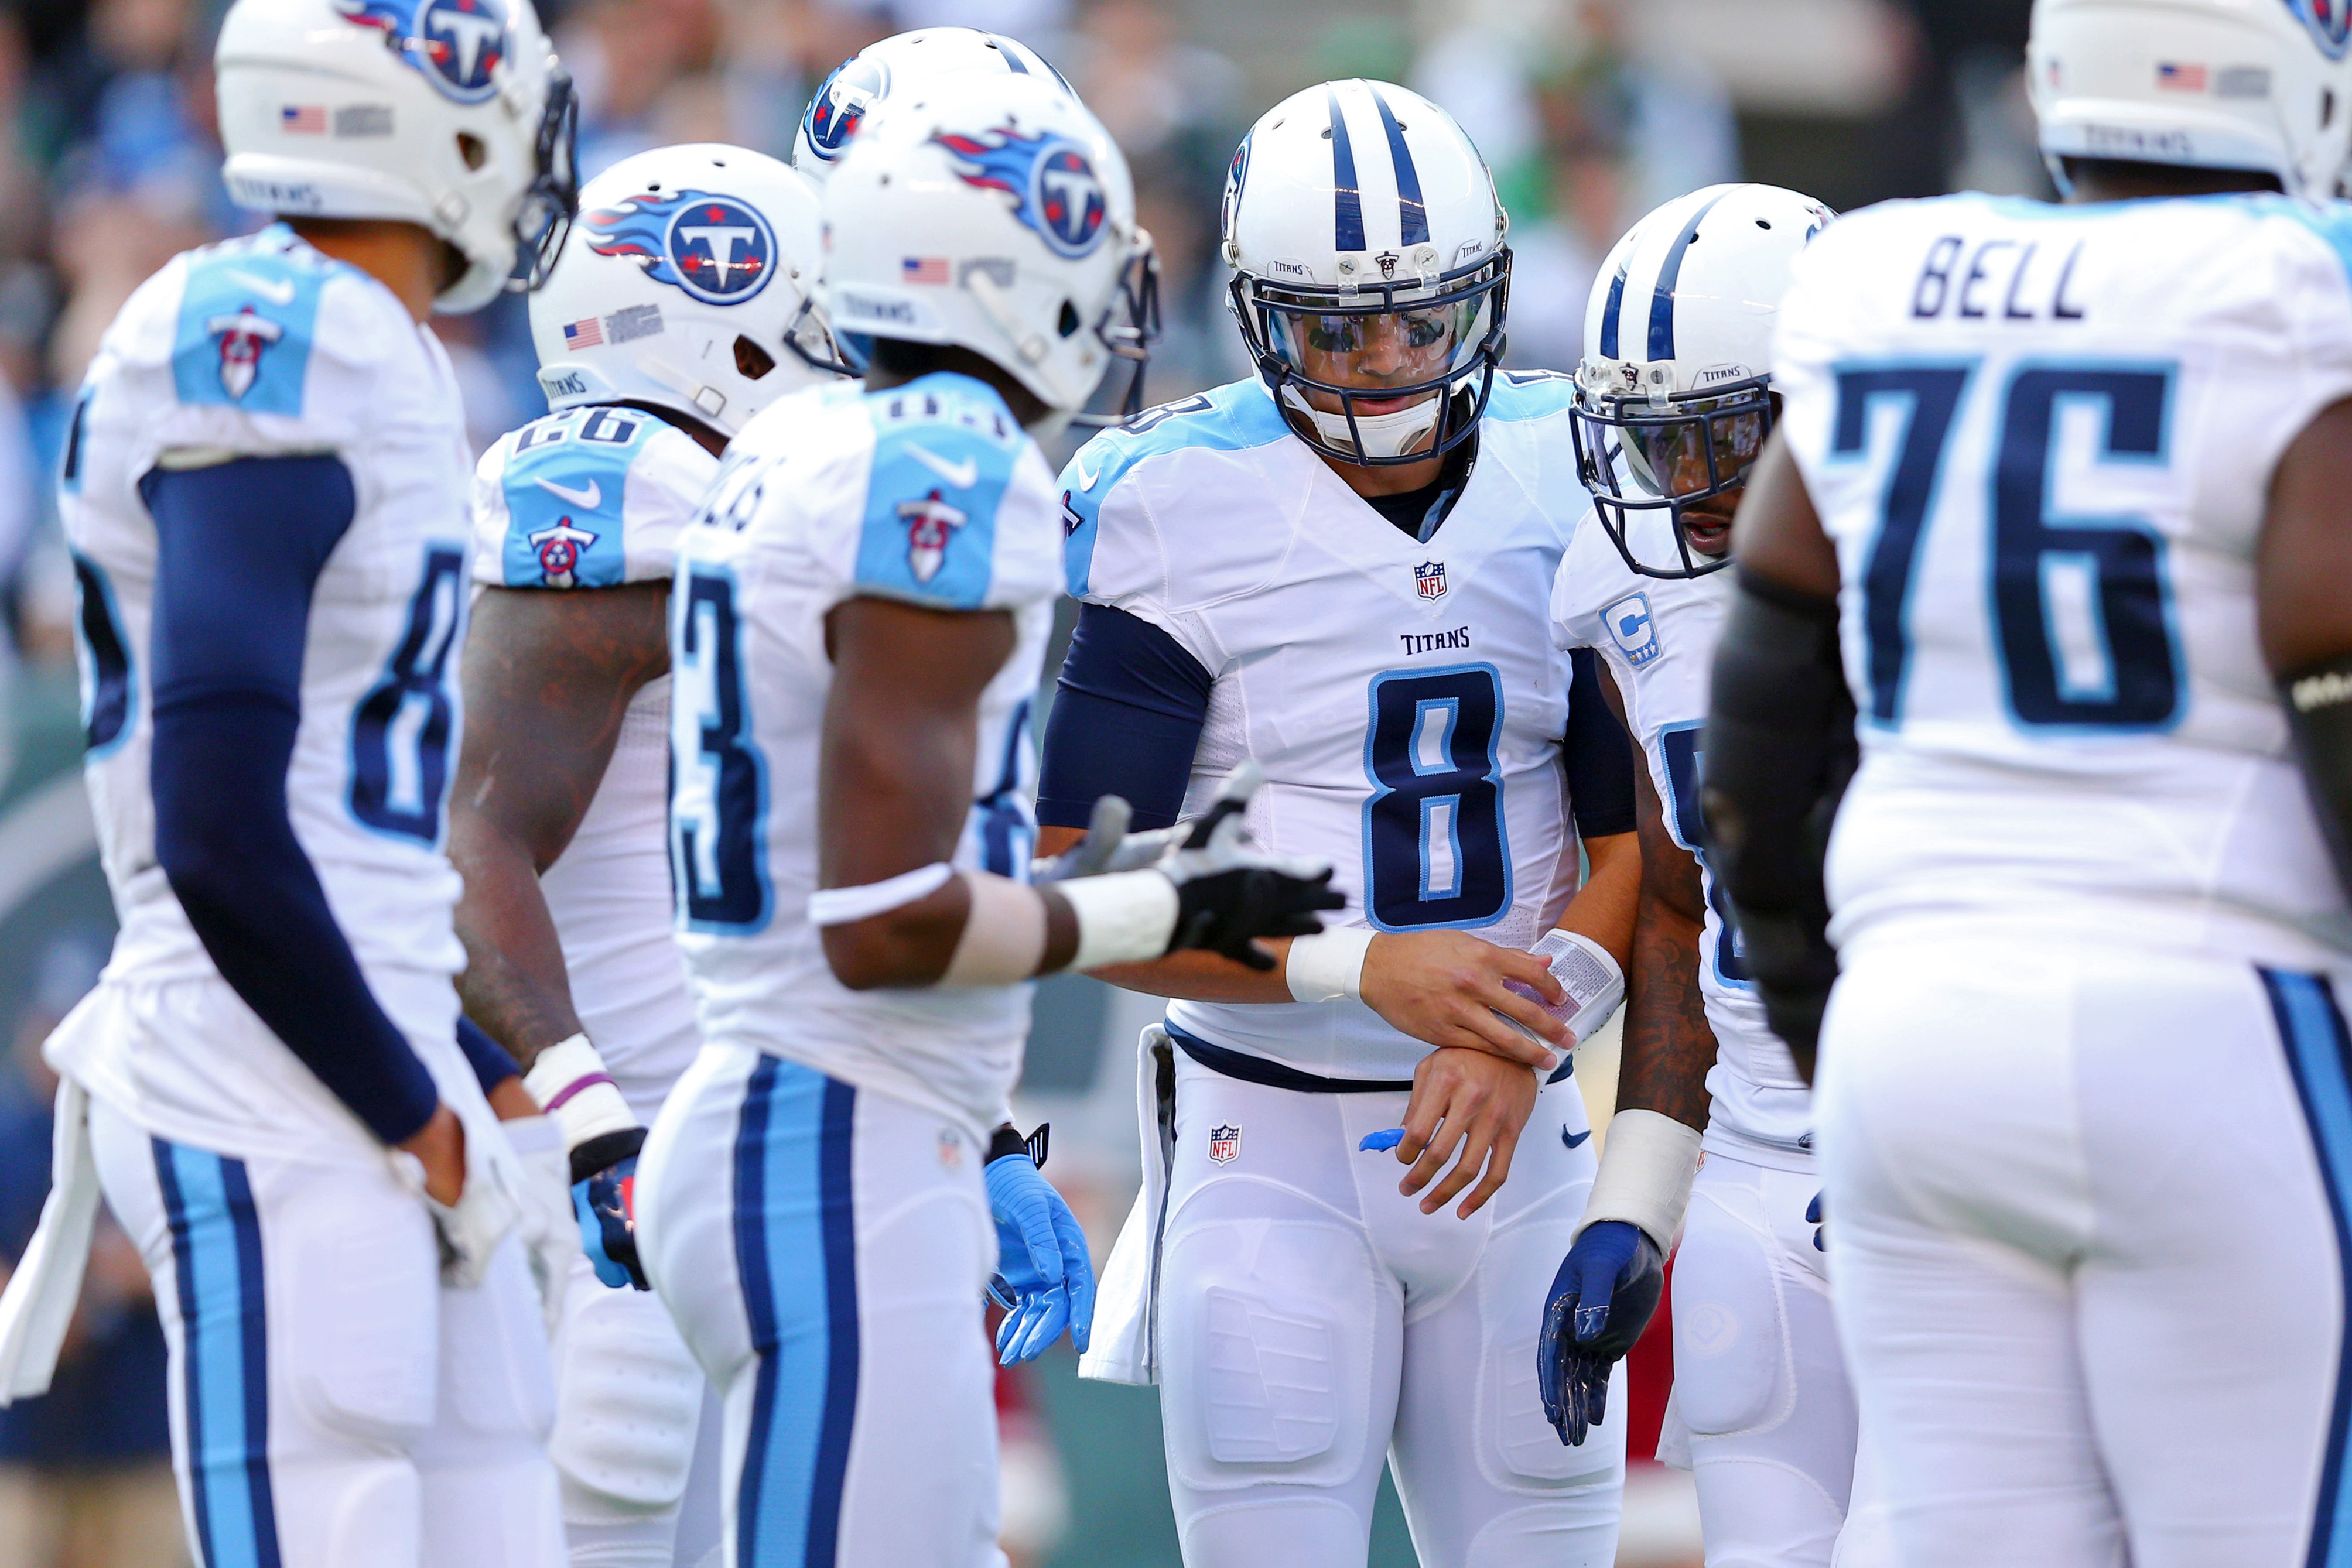 8994748-nfl-tennessee-titans-at-new-york